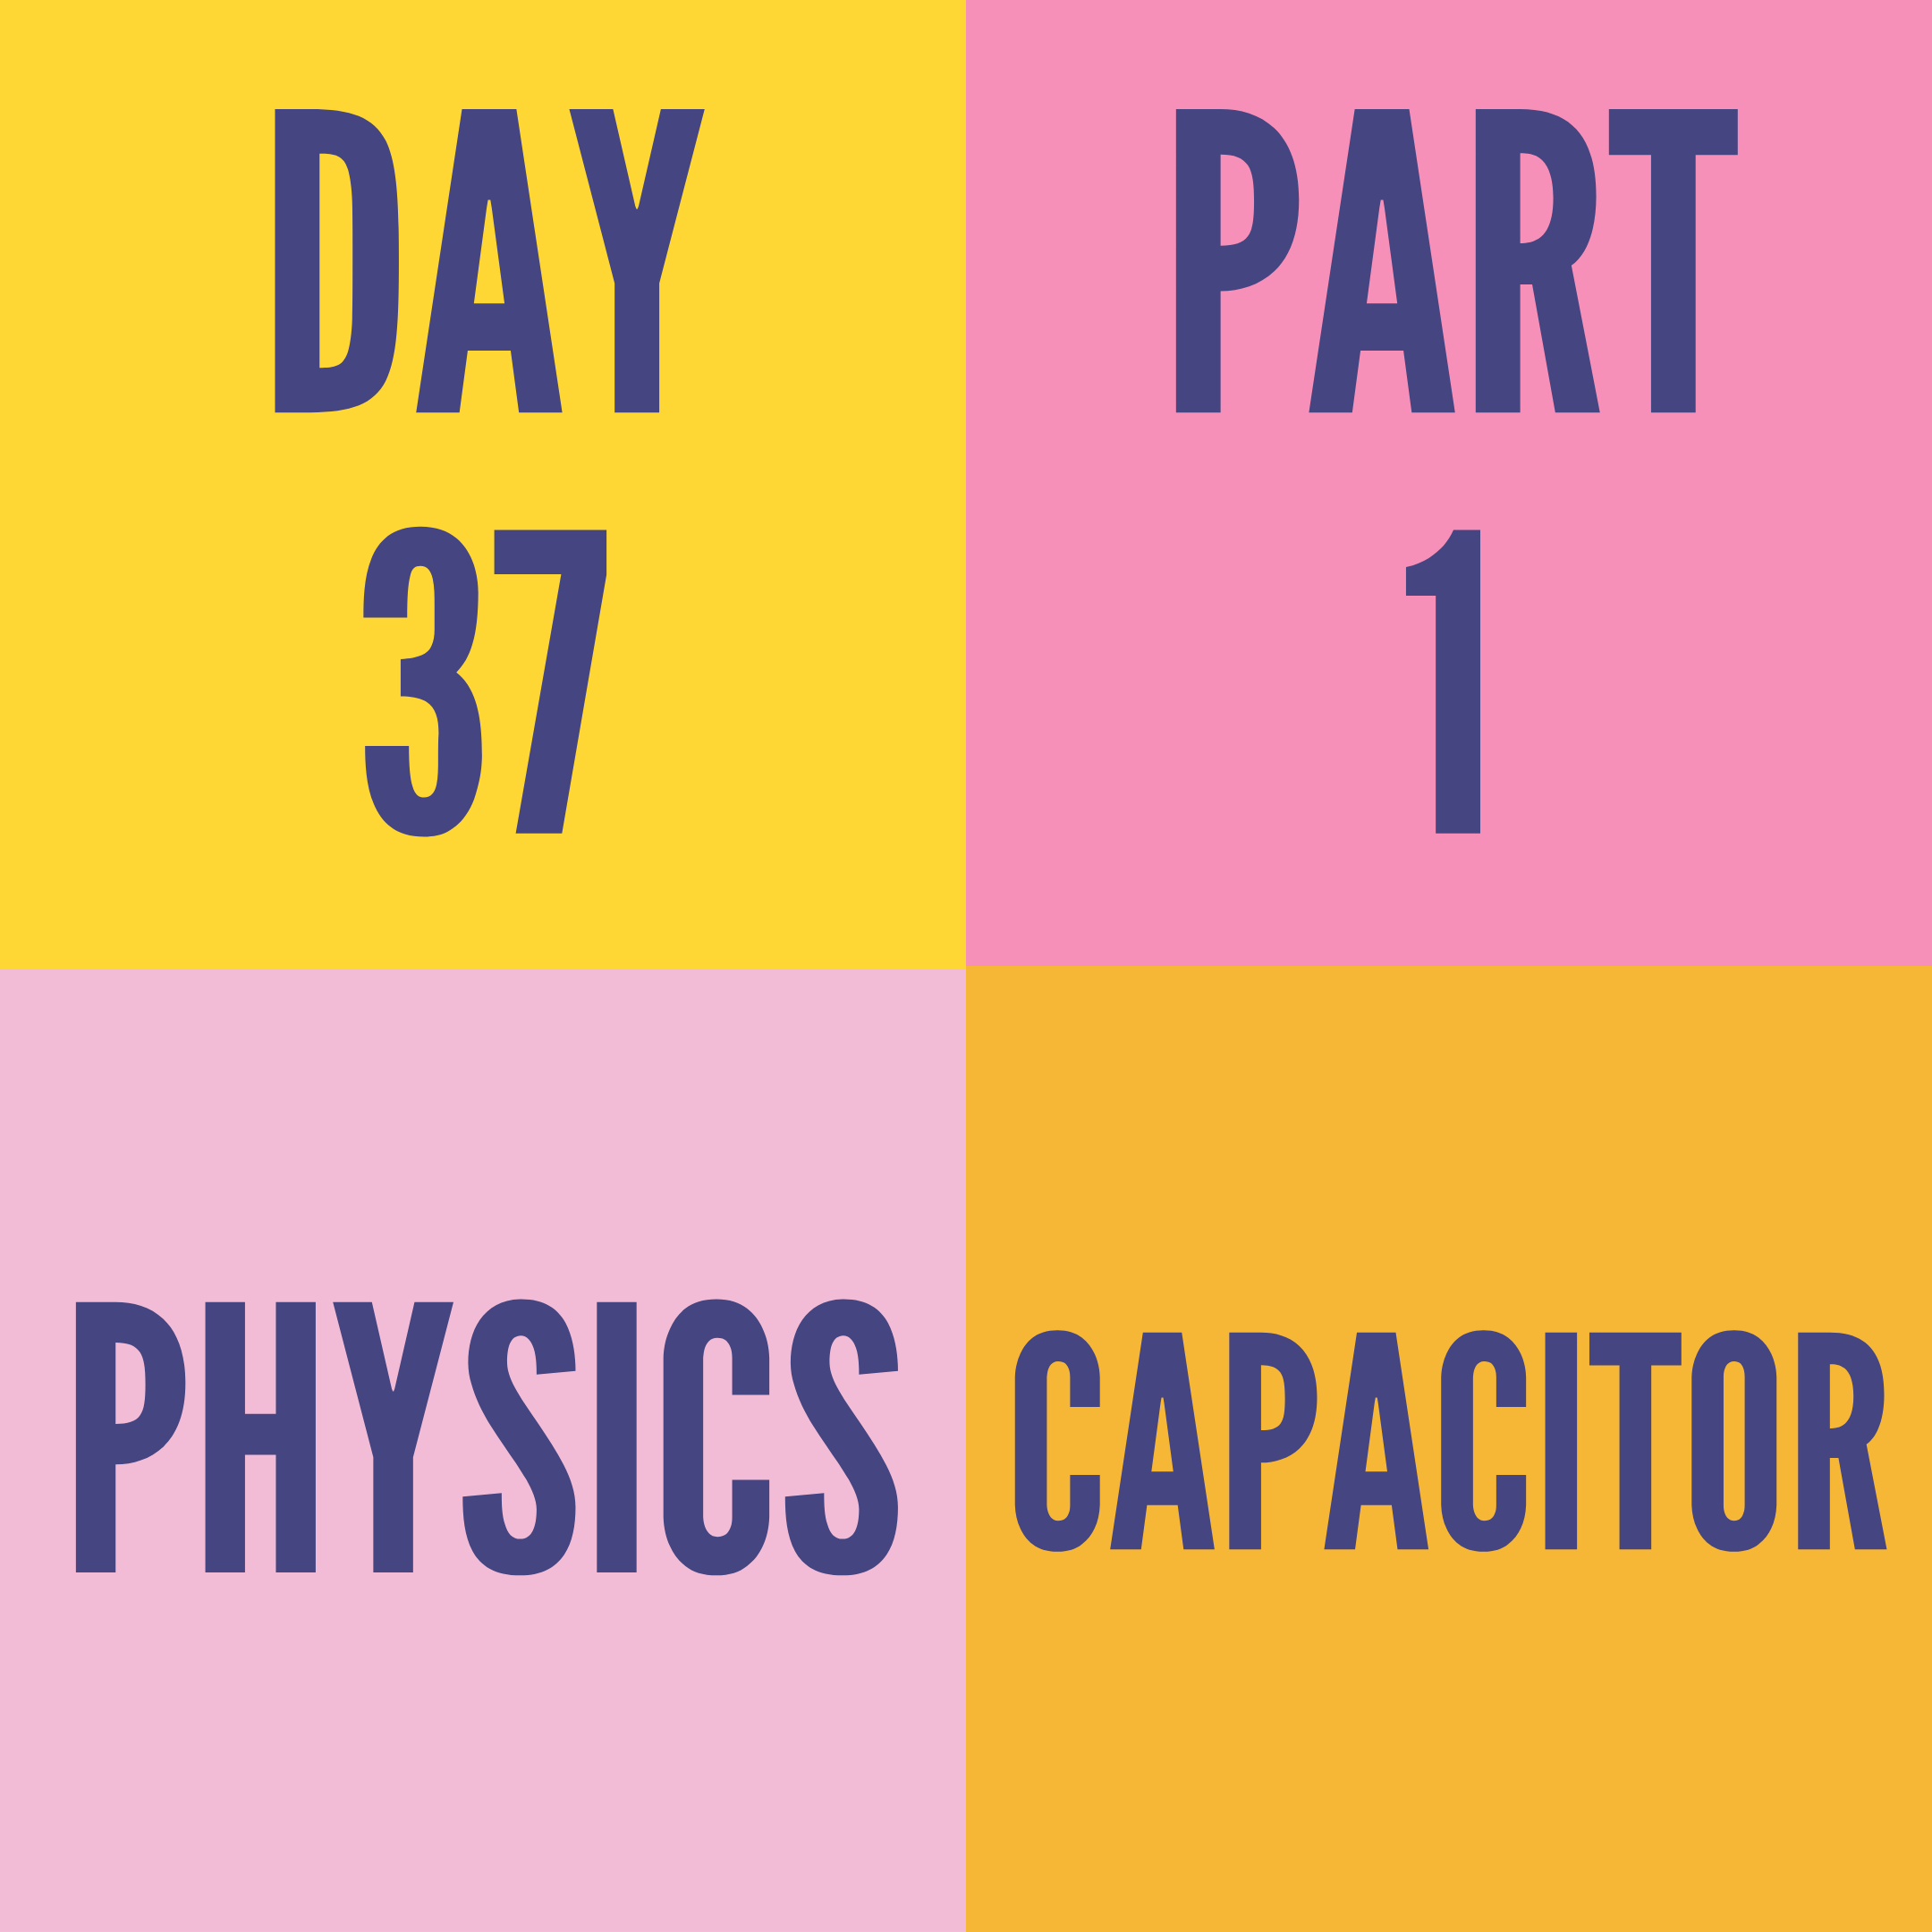 DAY-37 PART-1 CAPACITOR